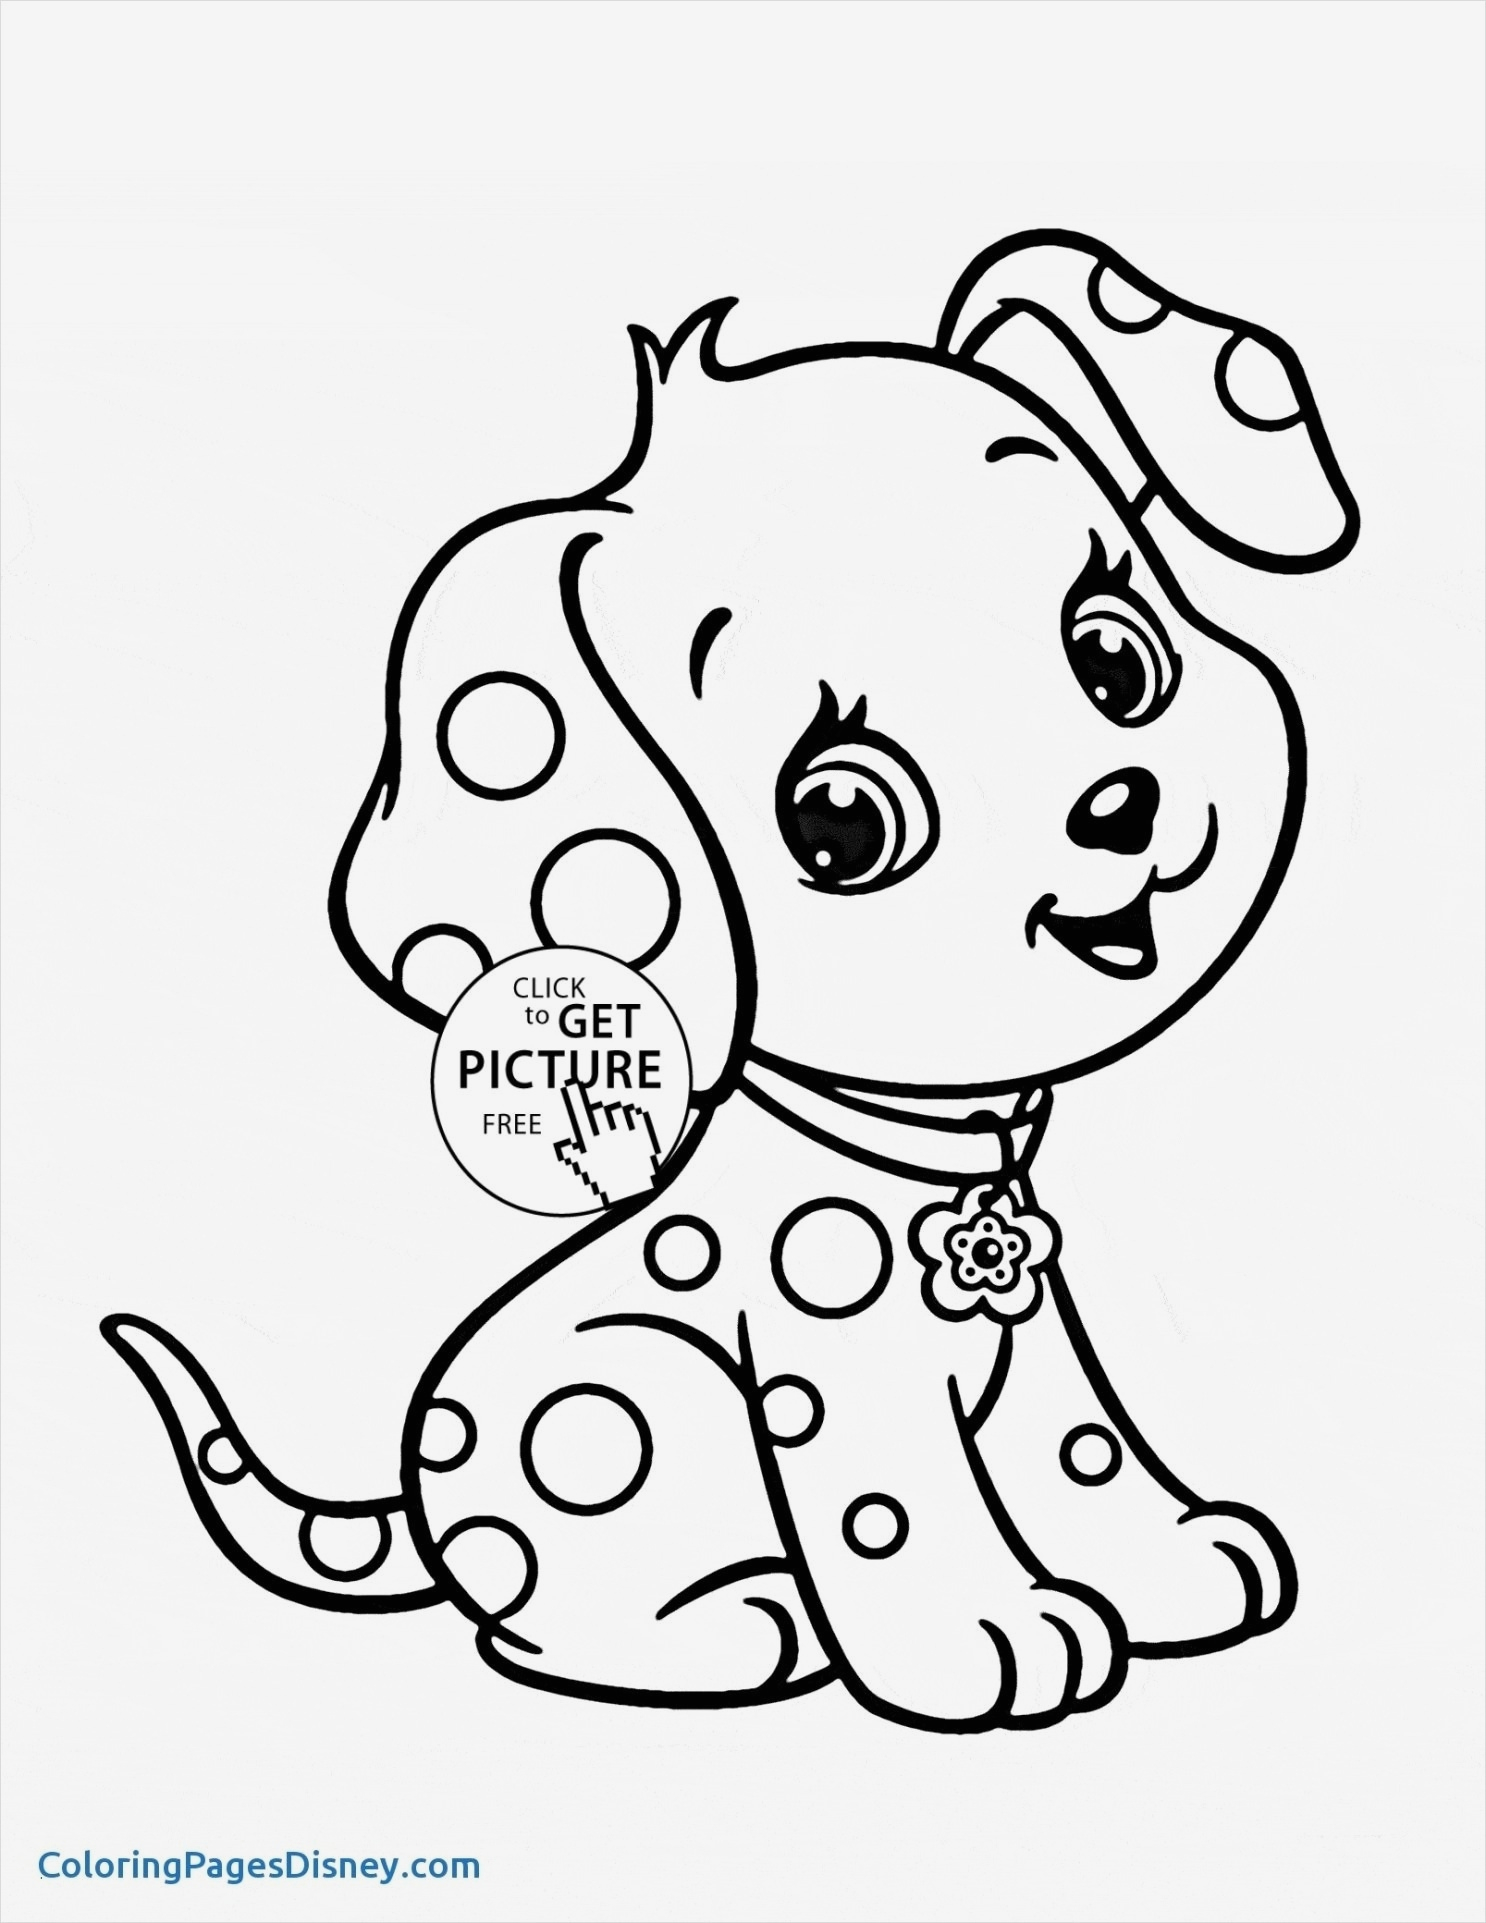 25 Disney Princess Halloween Coloring Pages Collection